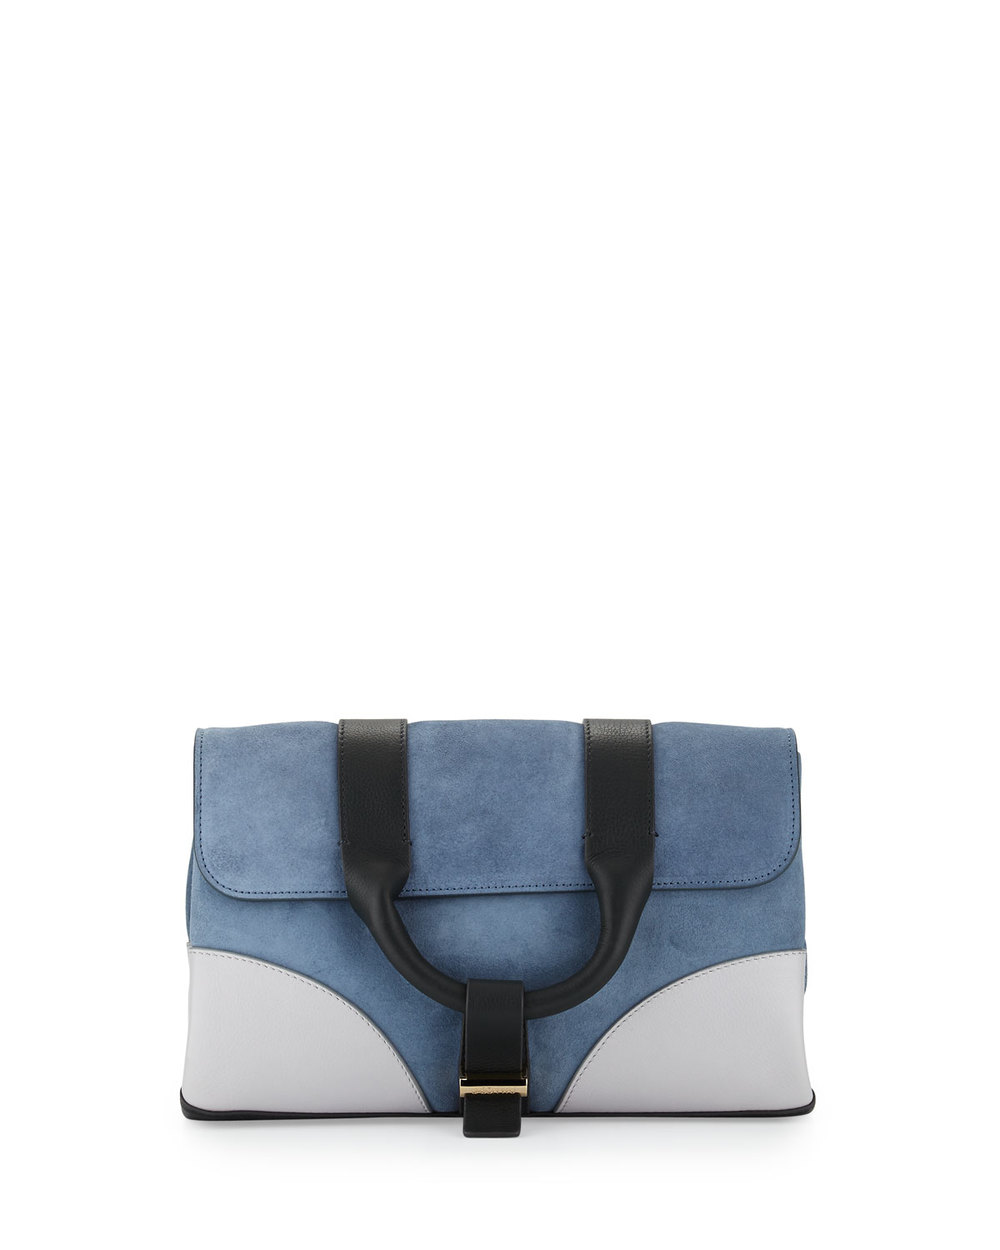 Jason Wu Hanne Suede & Leather Clutch Bag, Dark Plexi • $536.80 • Neiman Marcus